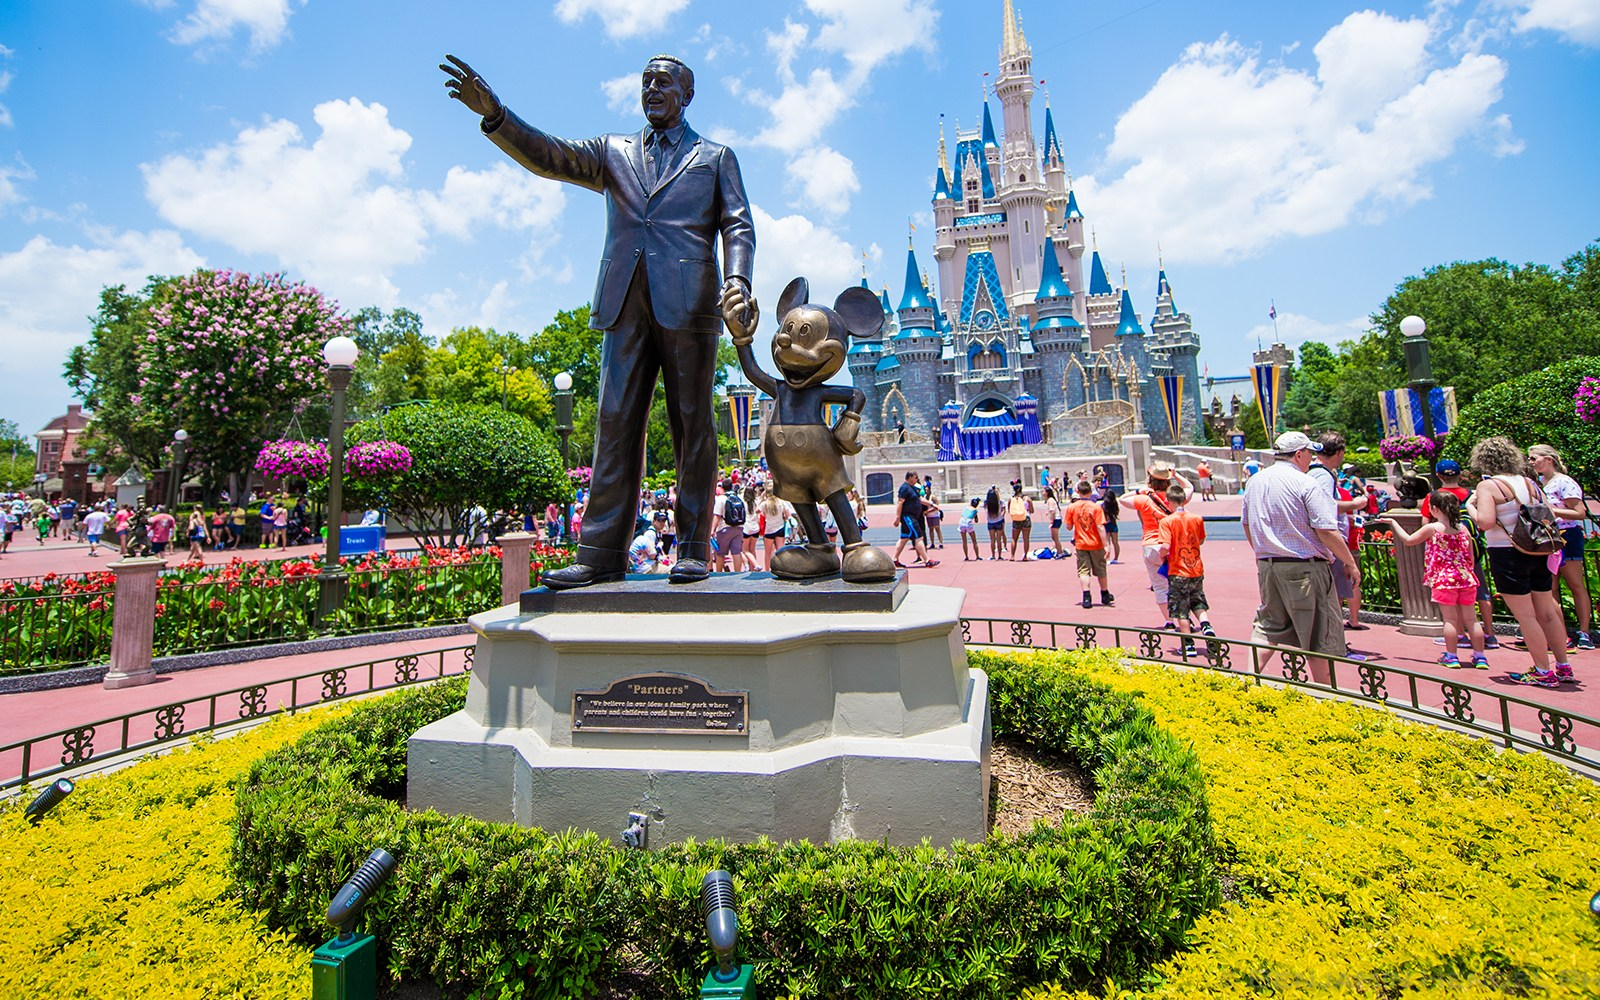 How To: Save a significant amount of money on your next Walt Disney World vacation